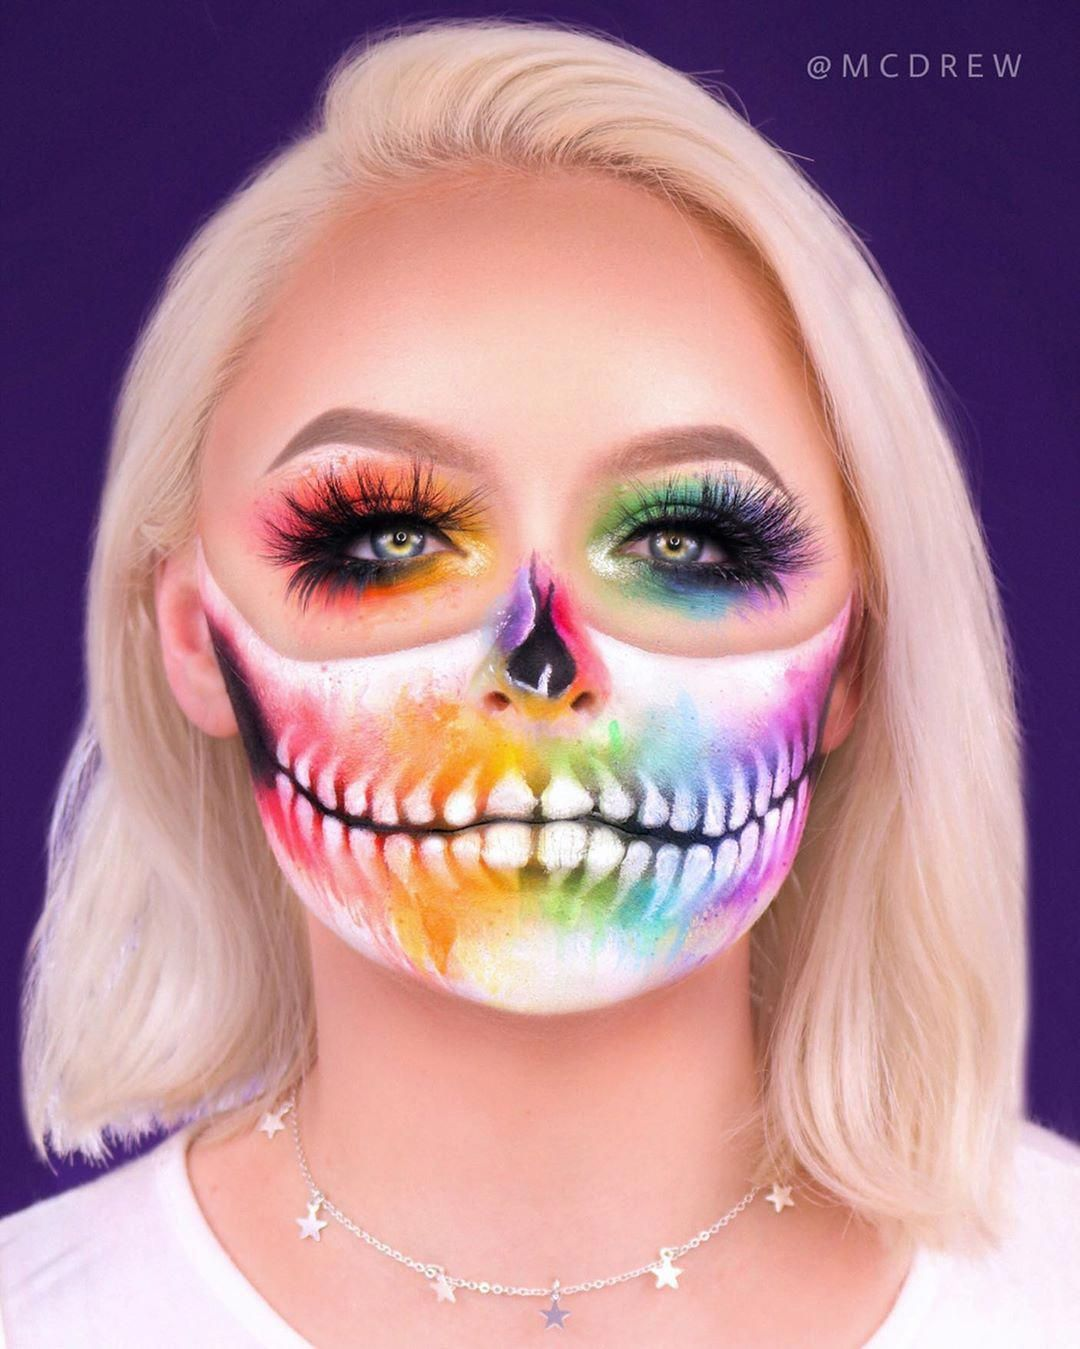 RAINBOW WATERCOLOR SKULL 🌈 ⠀⠀⠀⠀⠀⠀⠀⠀⠀⠀⠀⠀⠀⠀⠀ NEW video on